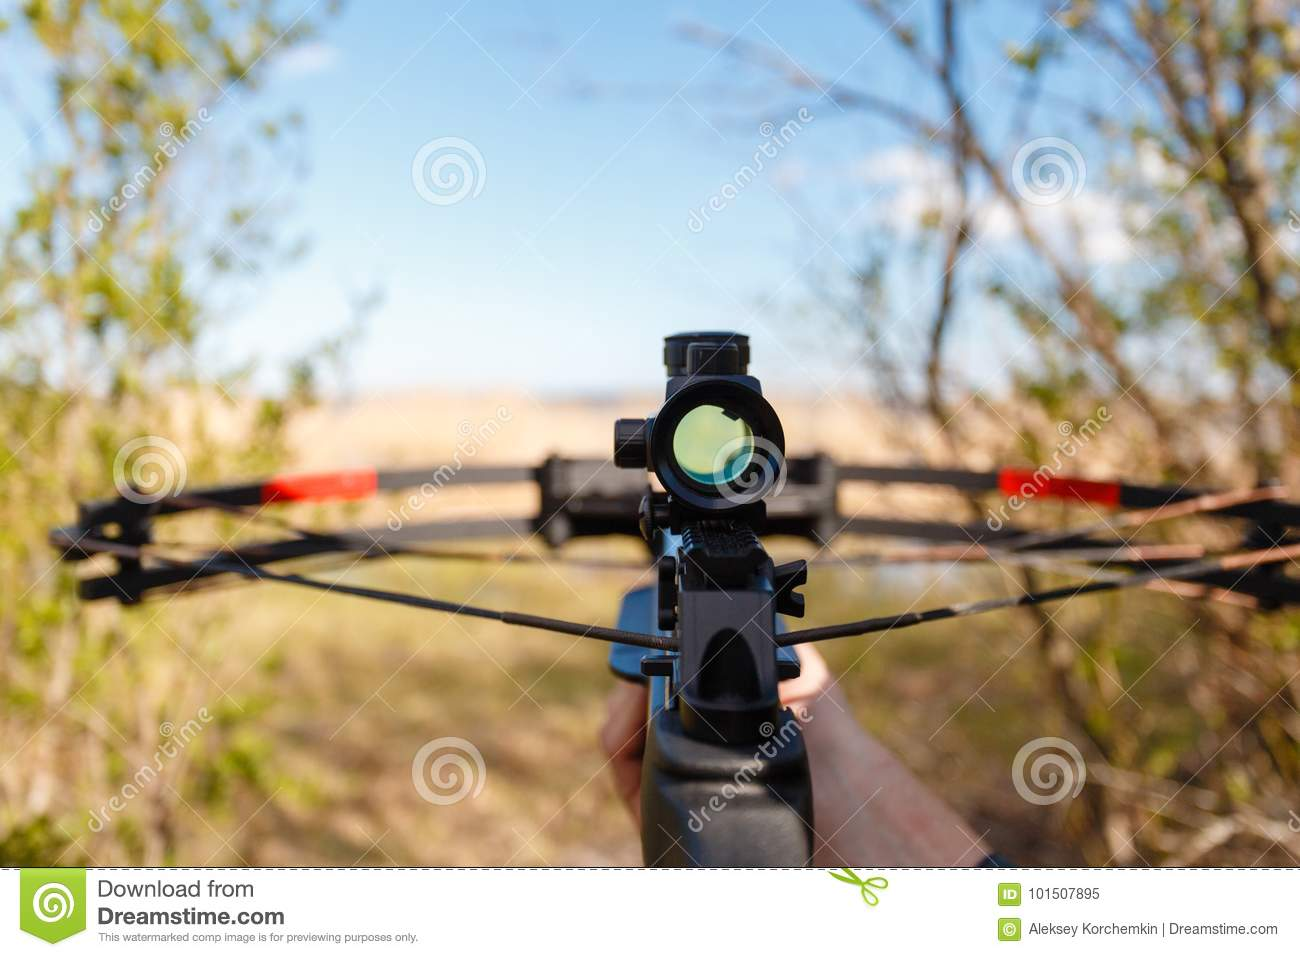 A crossbow with a sight to aim in first person